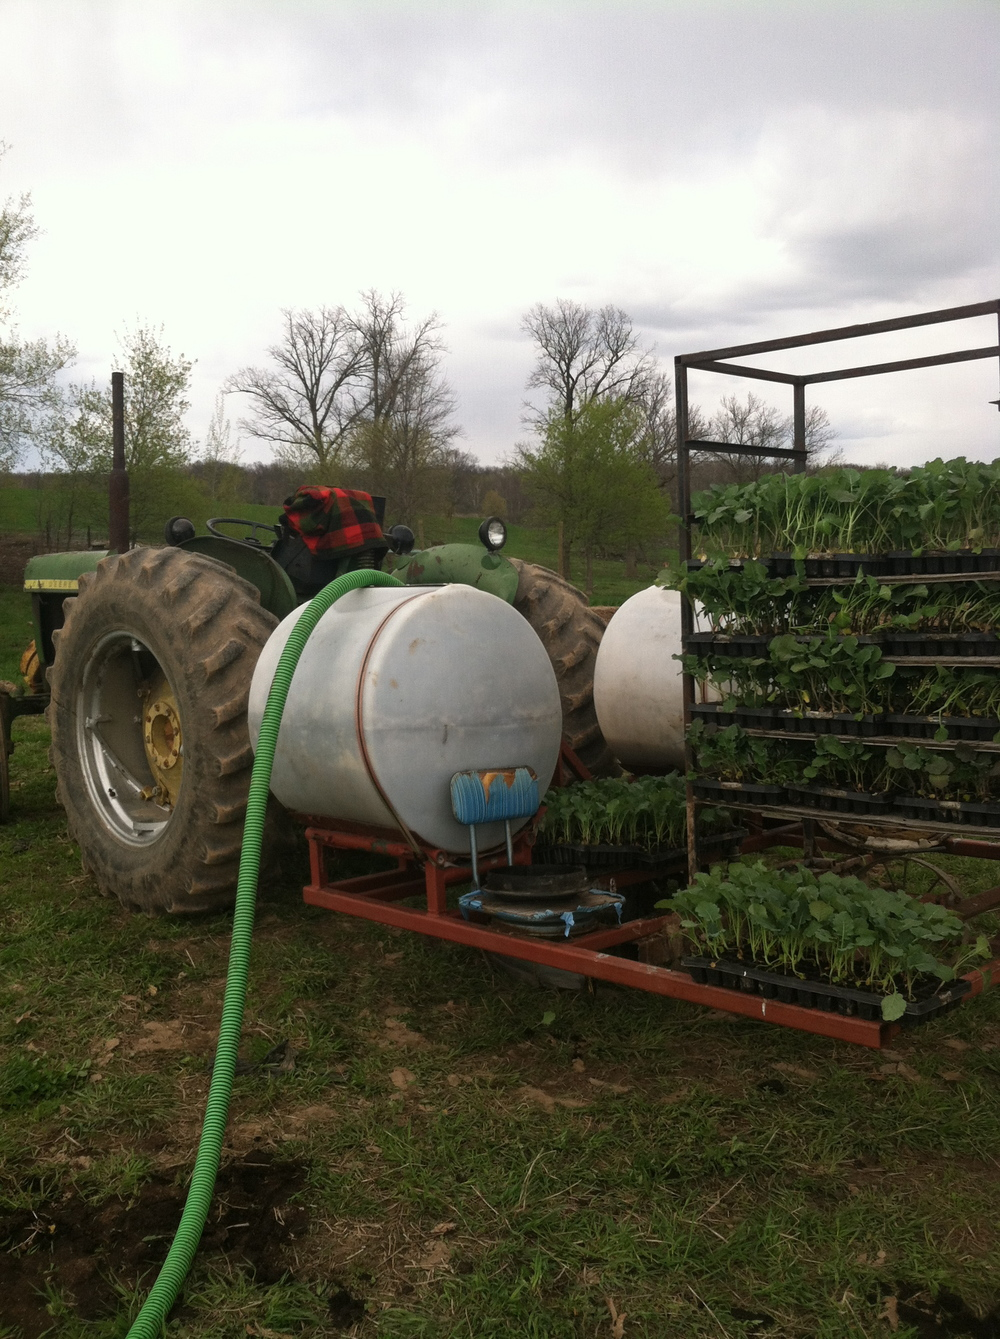 loading up the transplanter